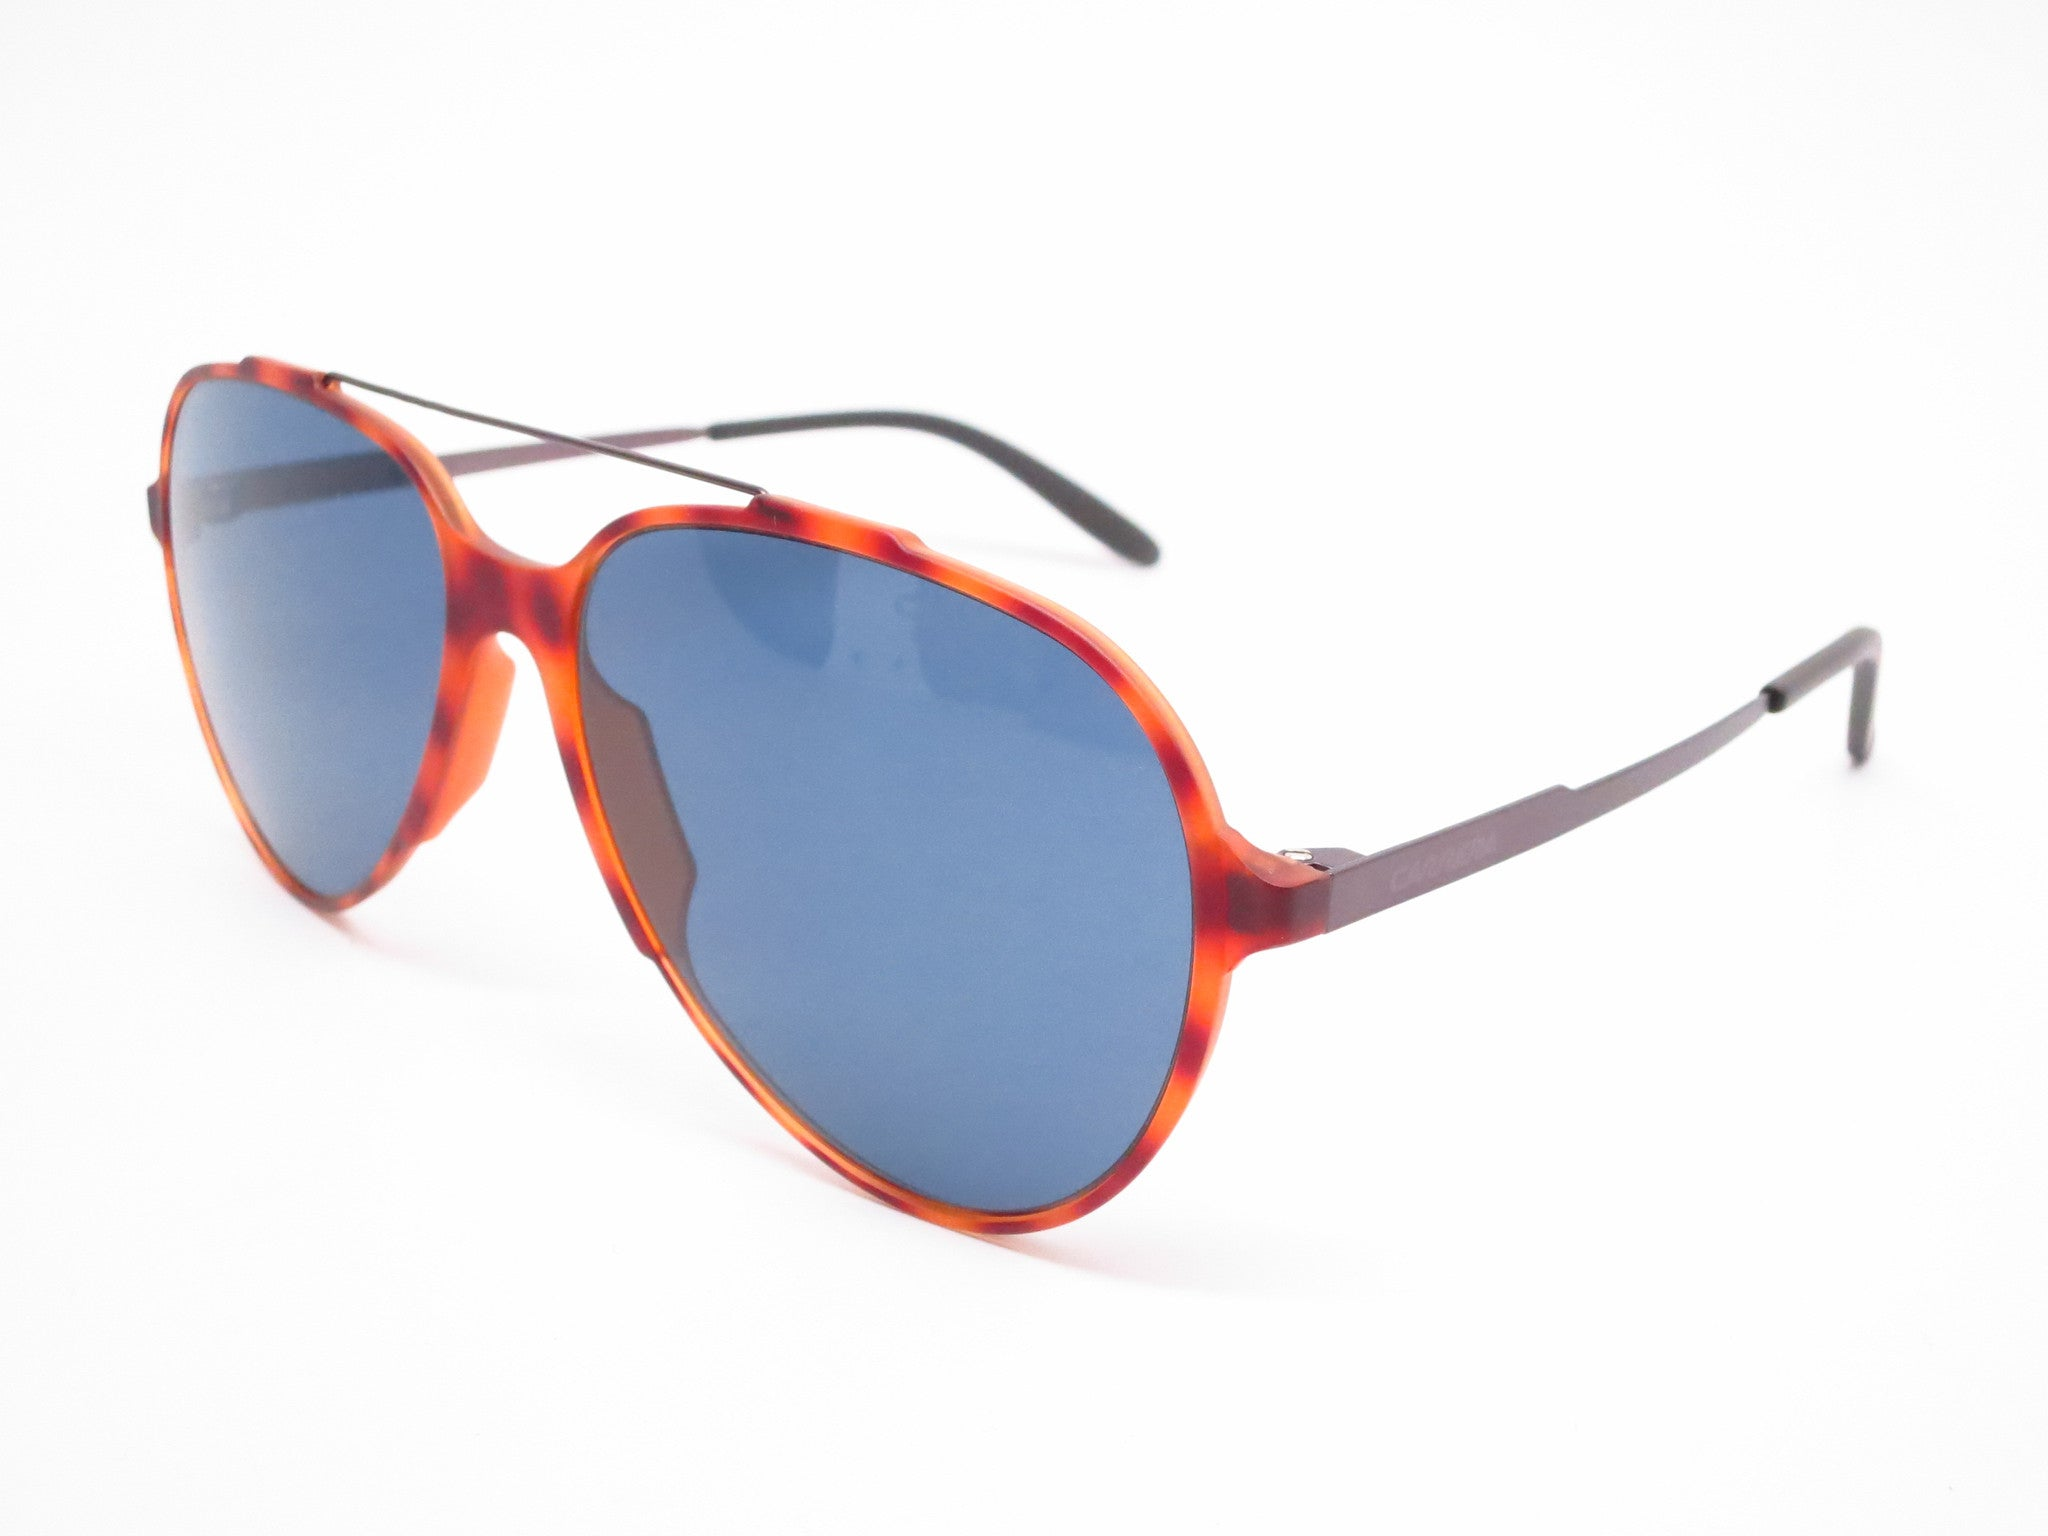 b988b6b214 Carrera 118 S T6L8F Light Havana Sunglasses - Eye Heart Shades - Carrera -  Sunglasses